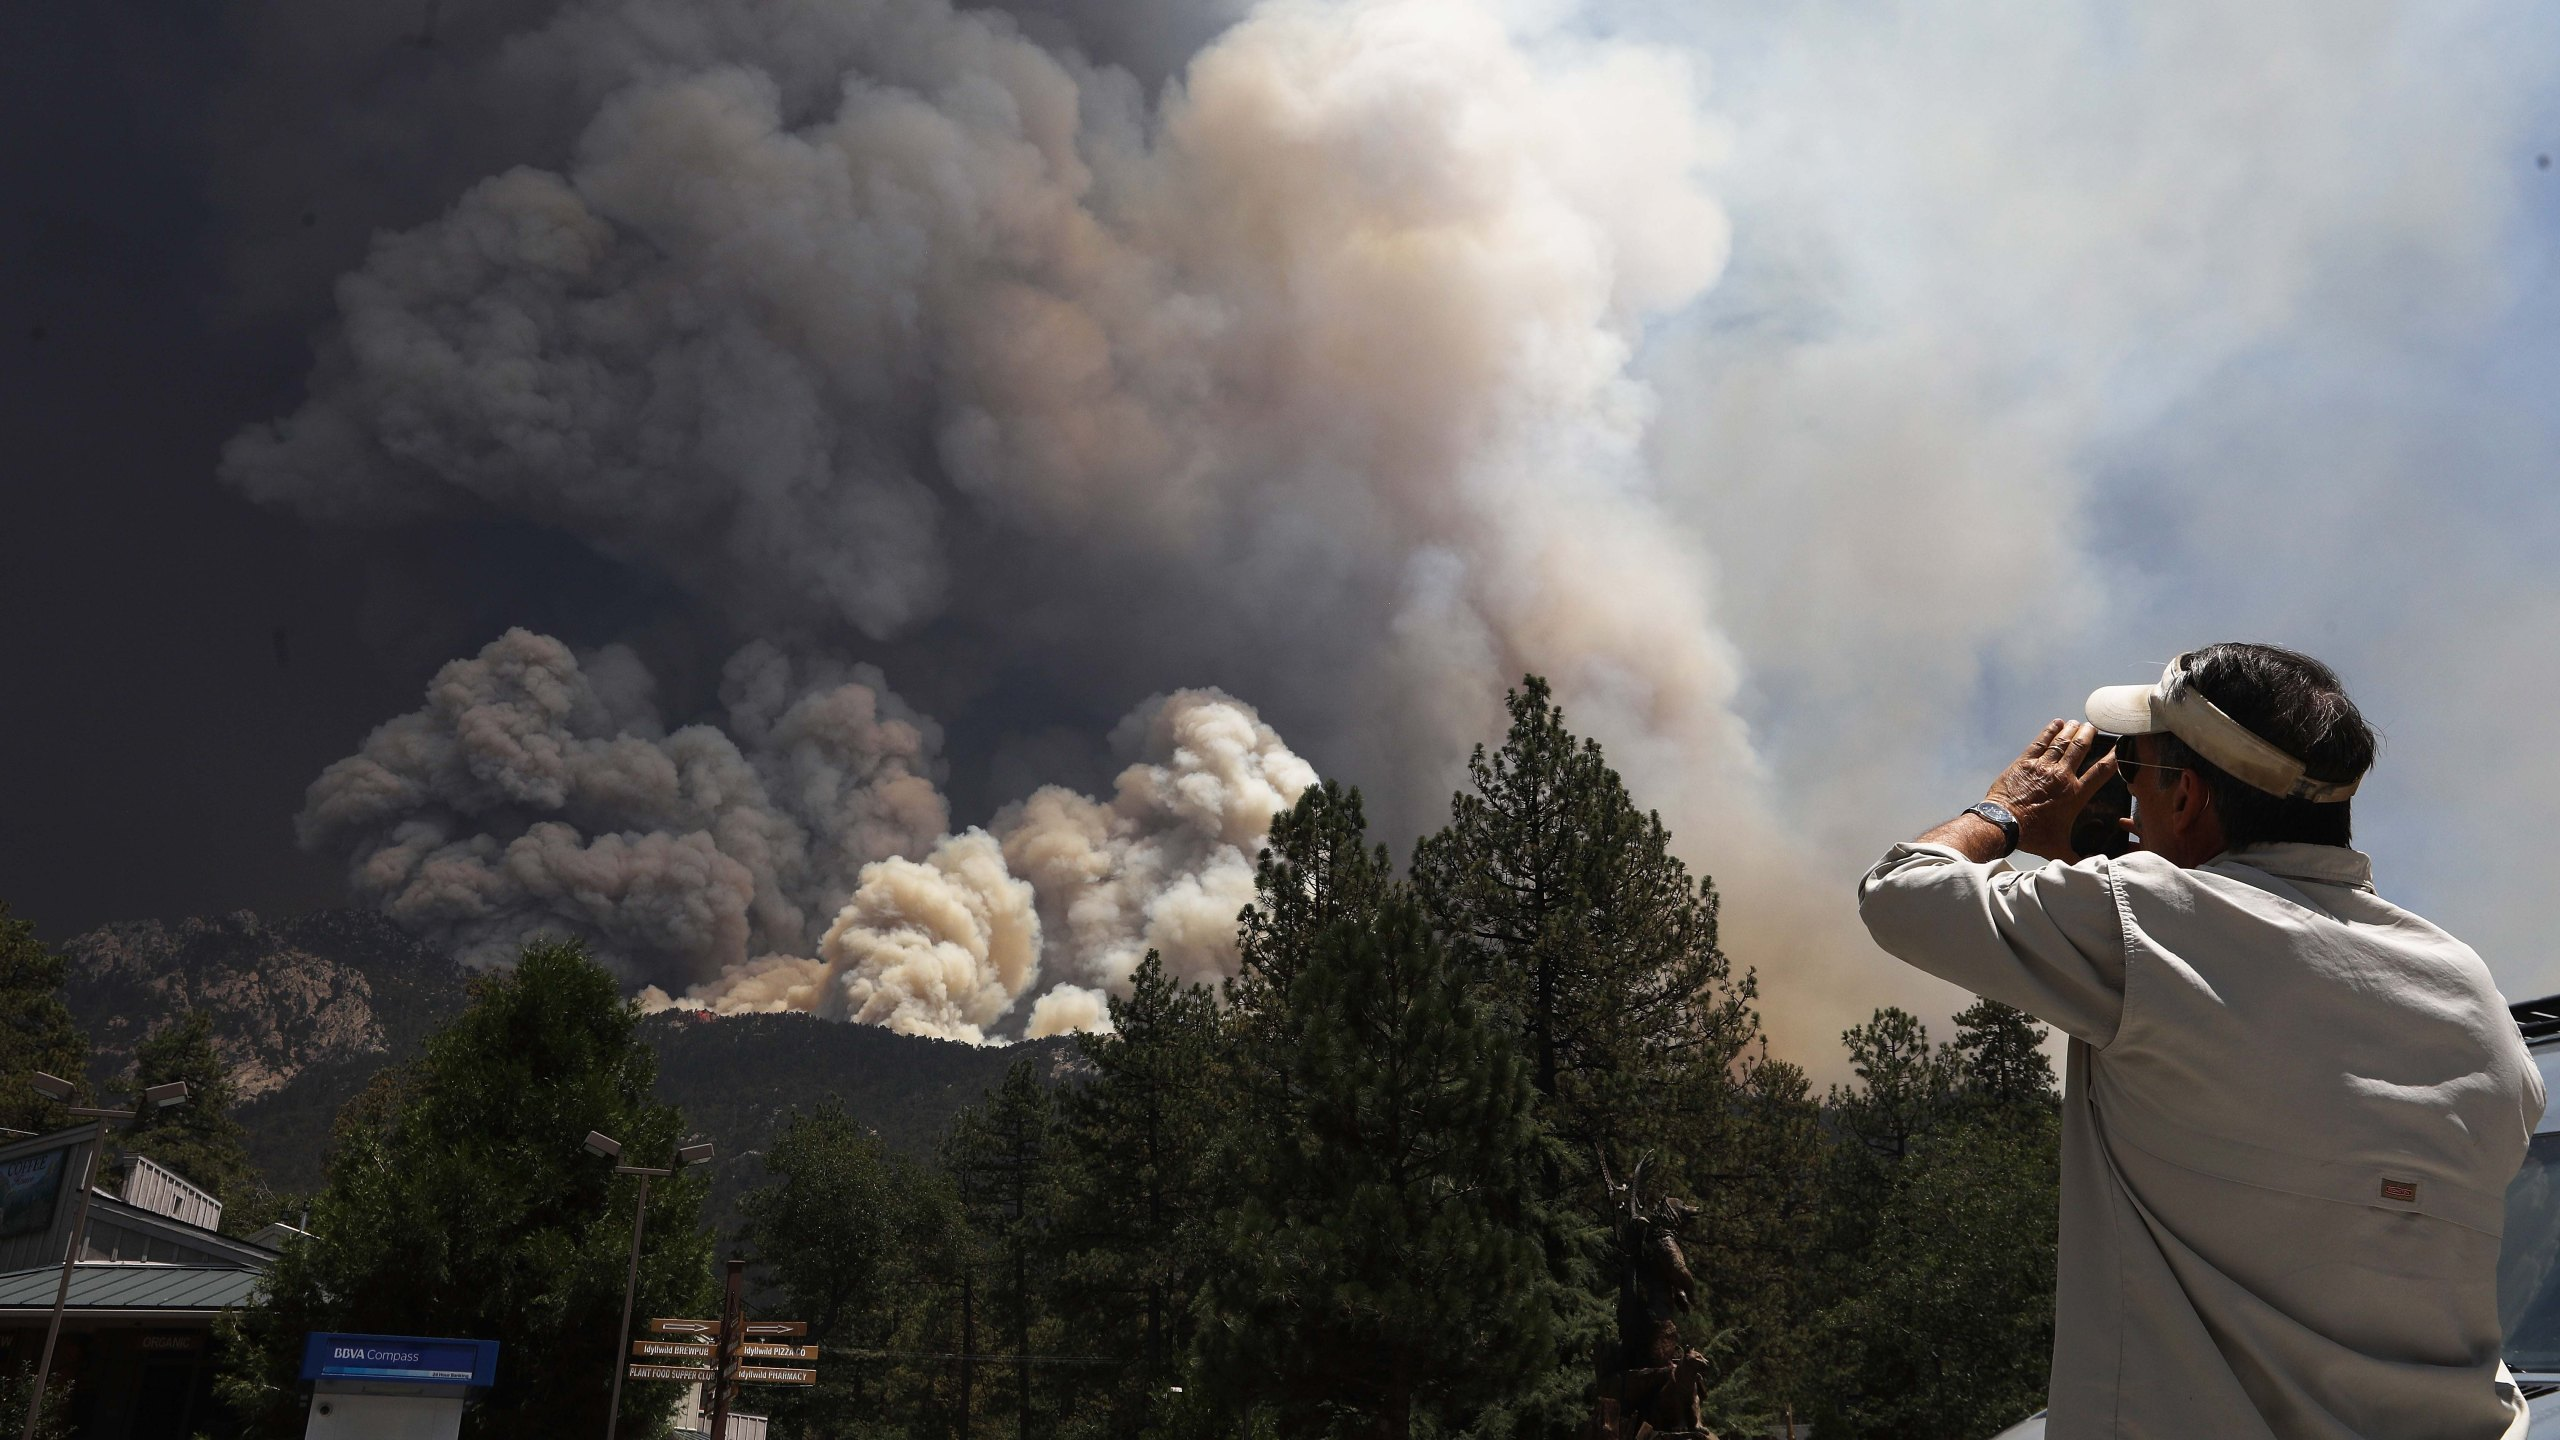 The Cranston Fire burns as a man takes photos near Idyllwild on July 26, 2018. (Credit: Mario Tama / Getty Images)